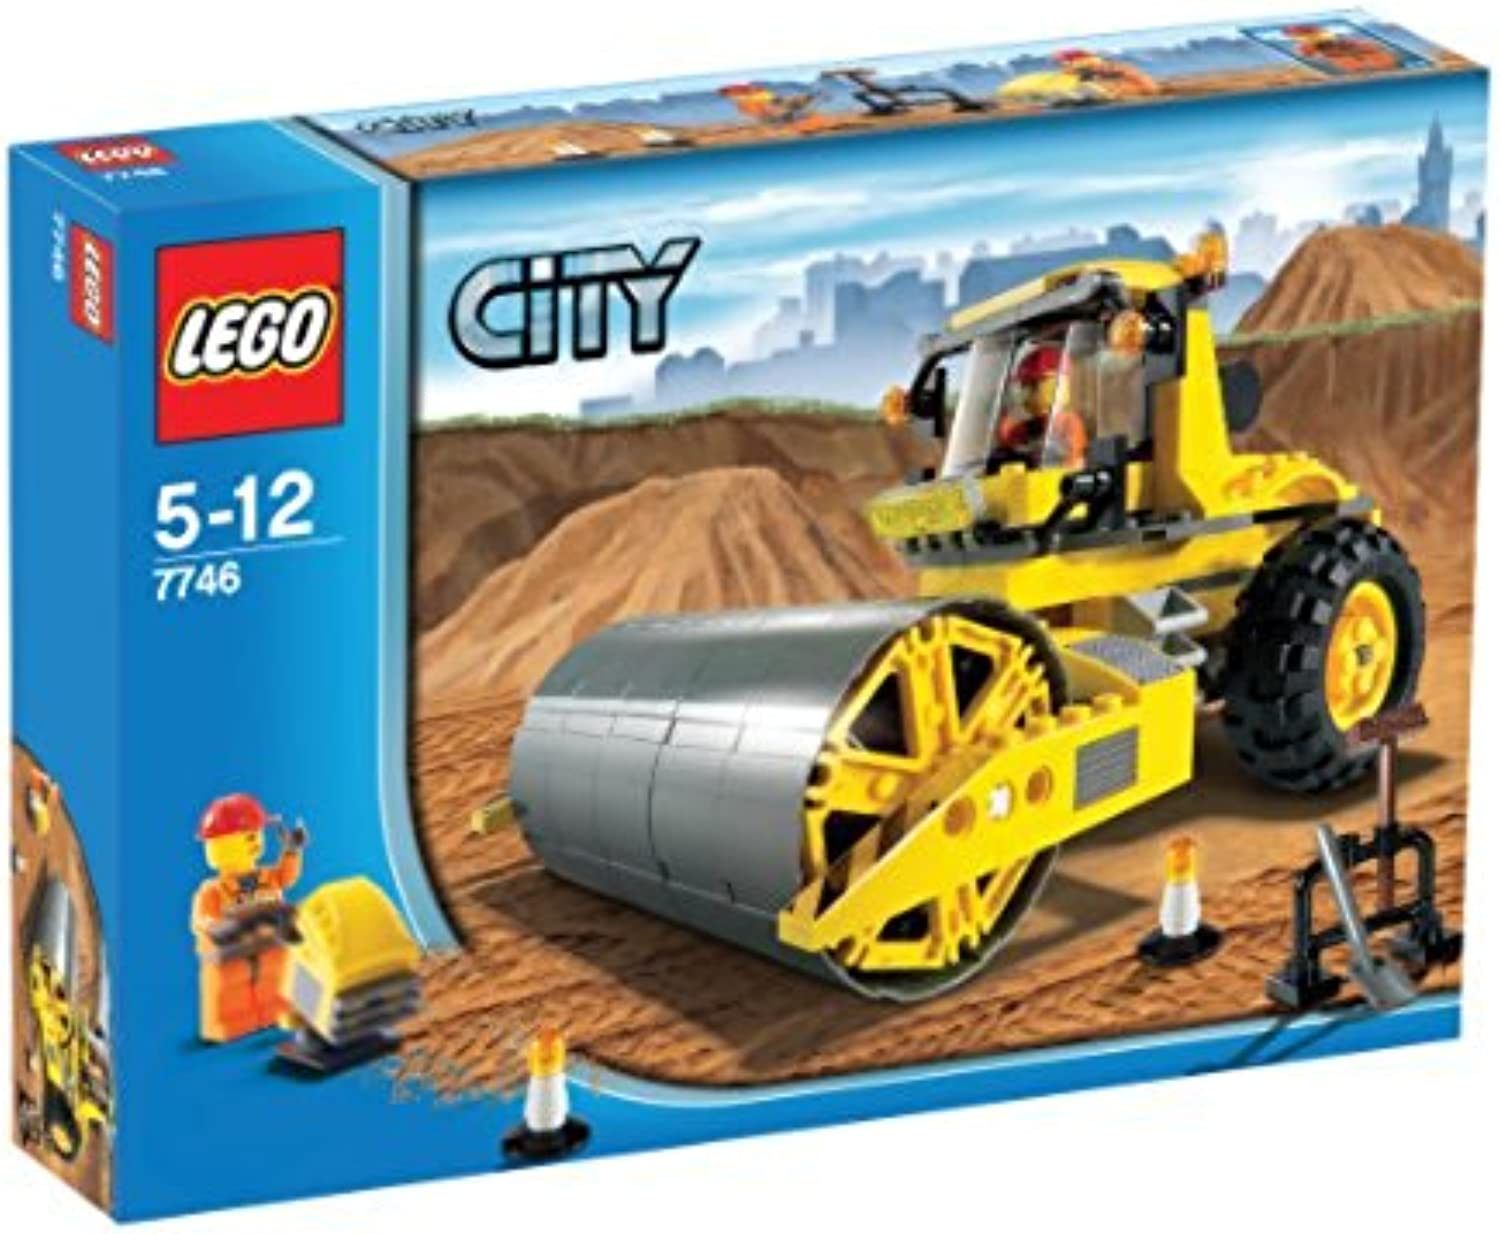 LEGO City 7746  Road Roller